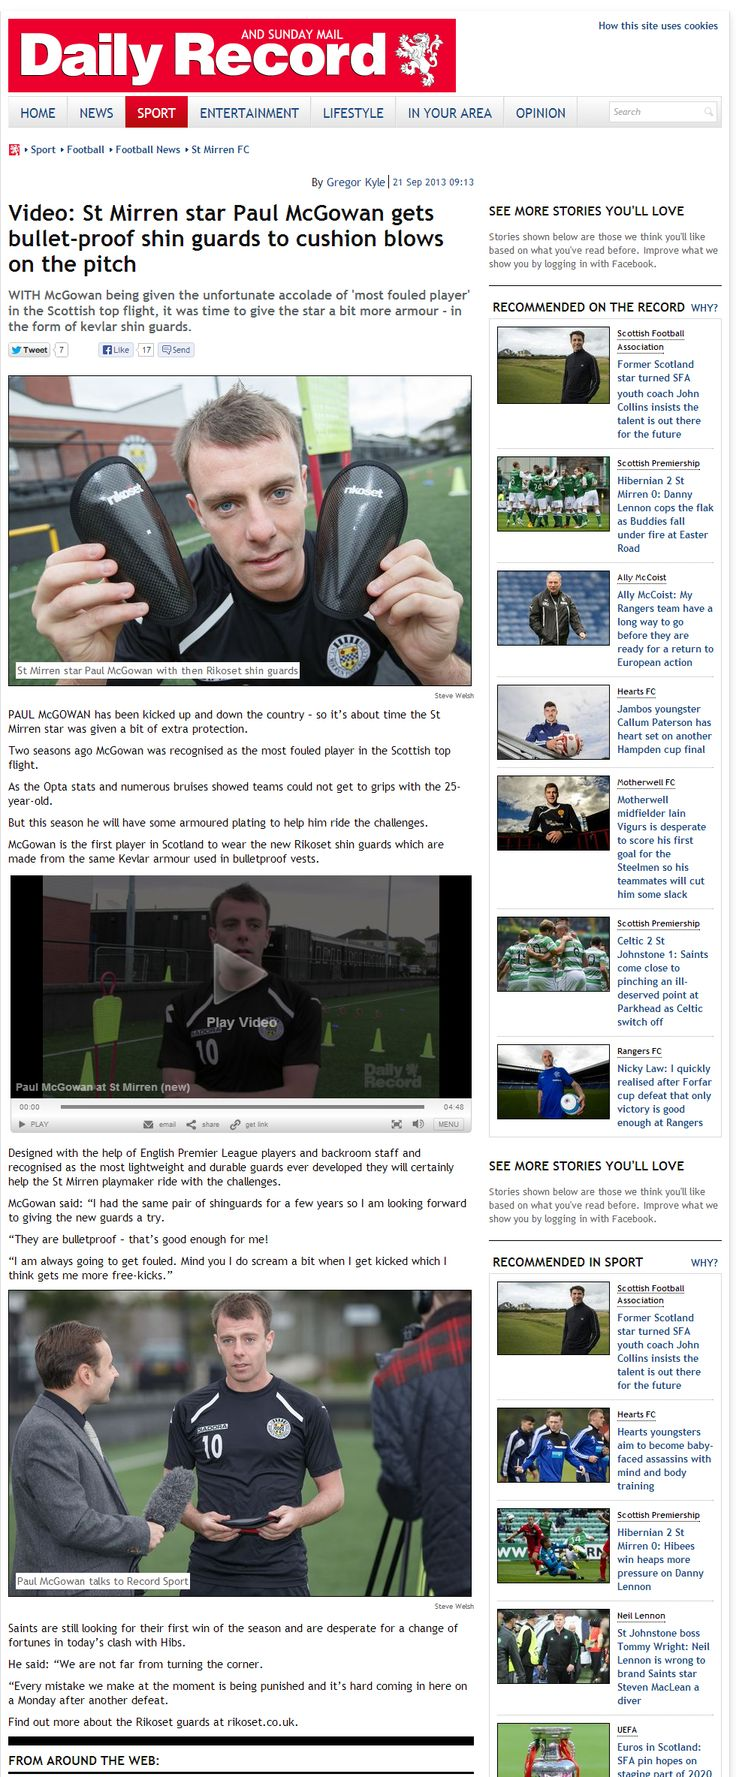 The DAily Record present Scotlands most fouled player wit ha pair of Rikoset Elite shin guards - http://www.rikoset.co.uk/elite-handcrafted-limited-edition/